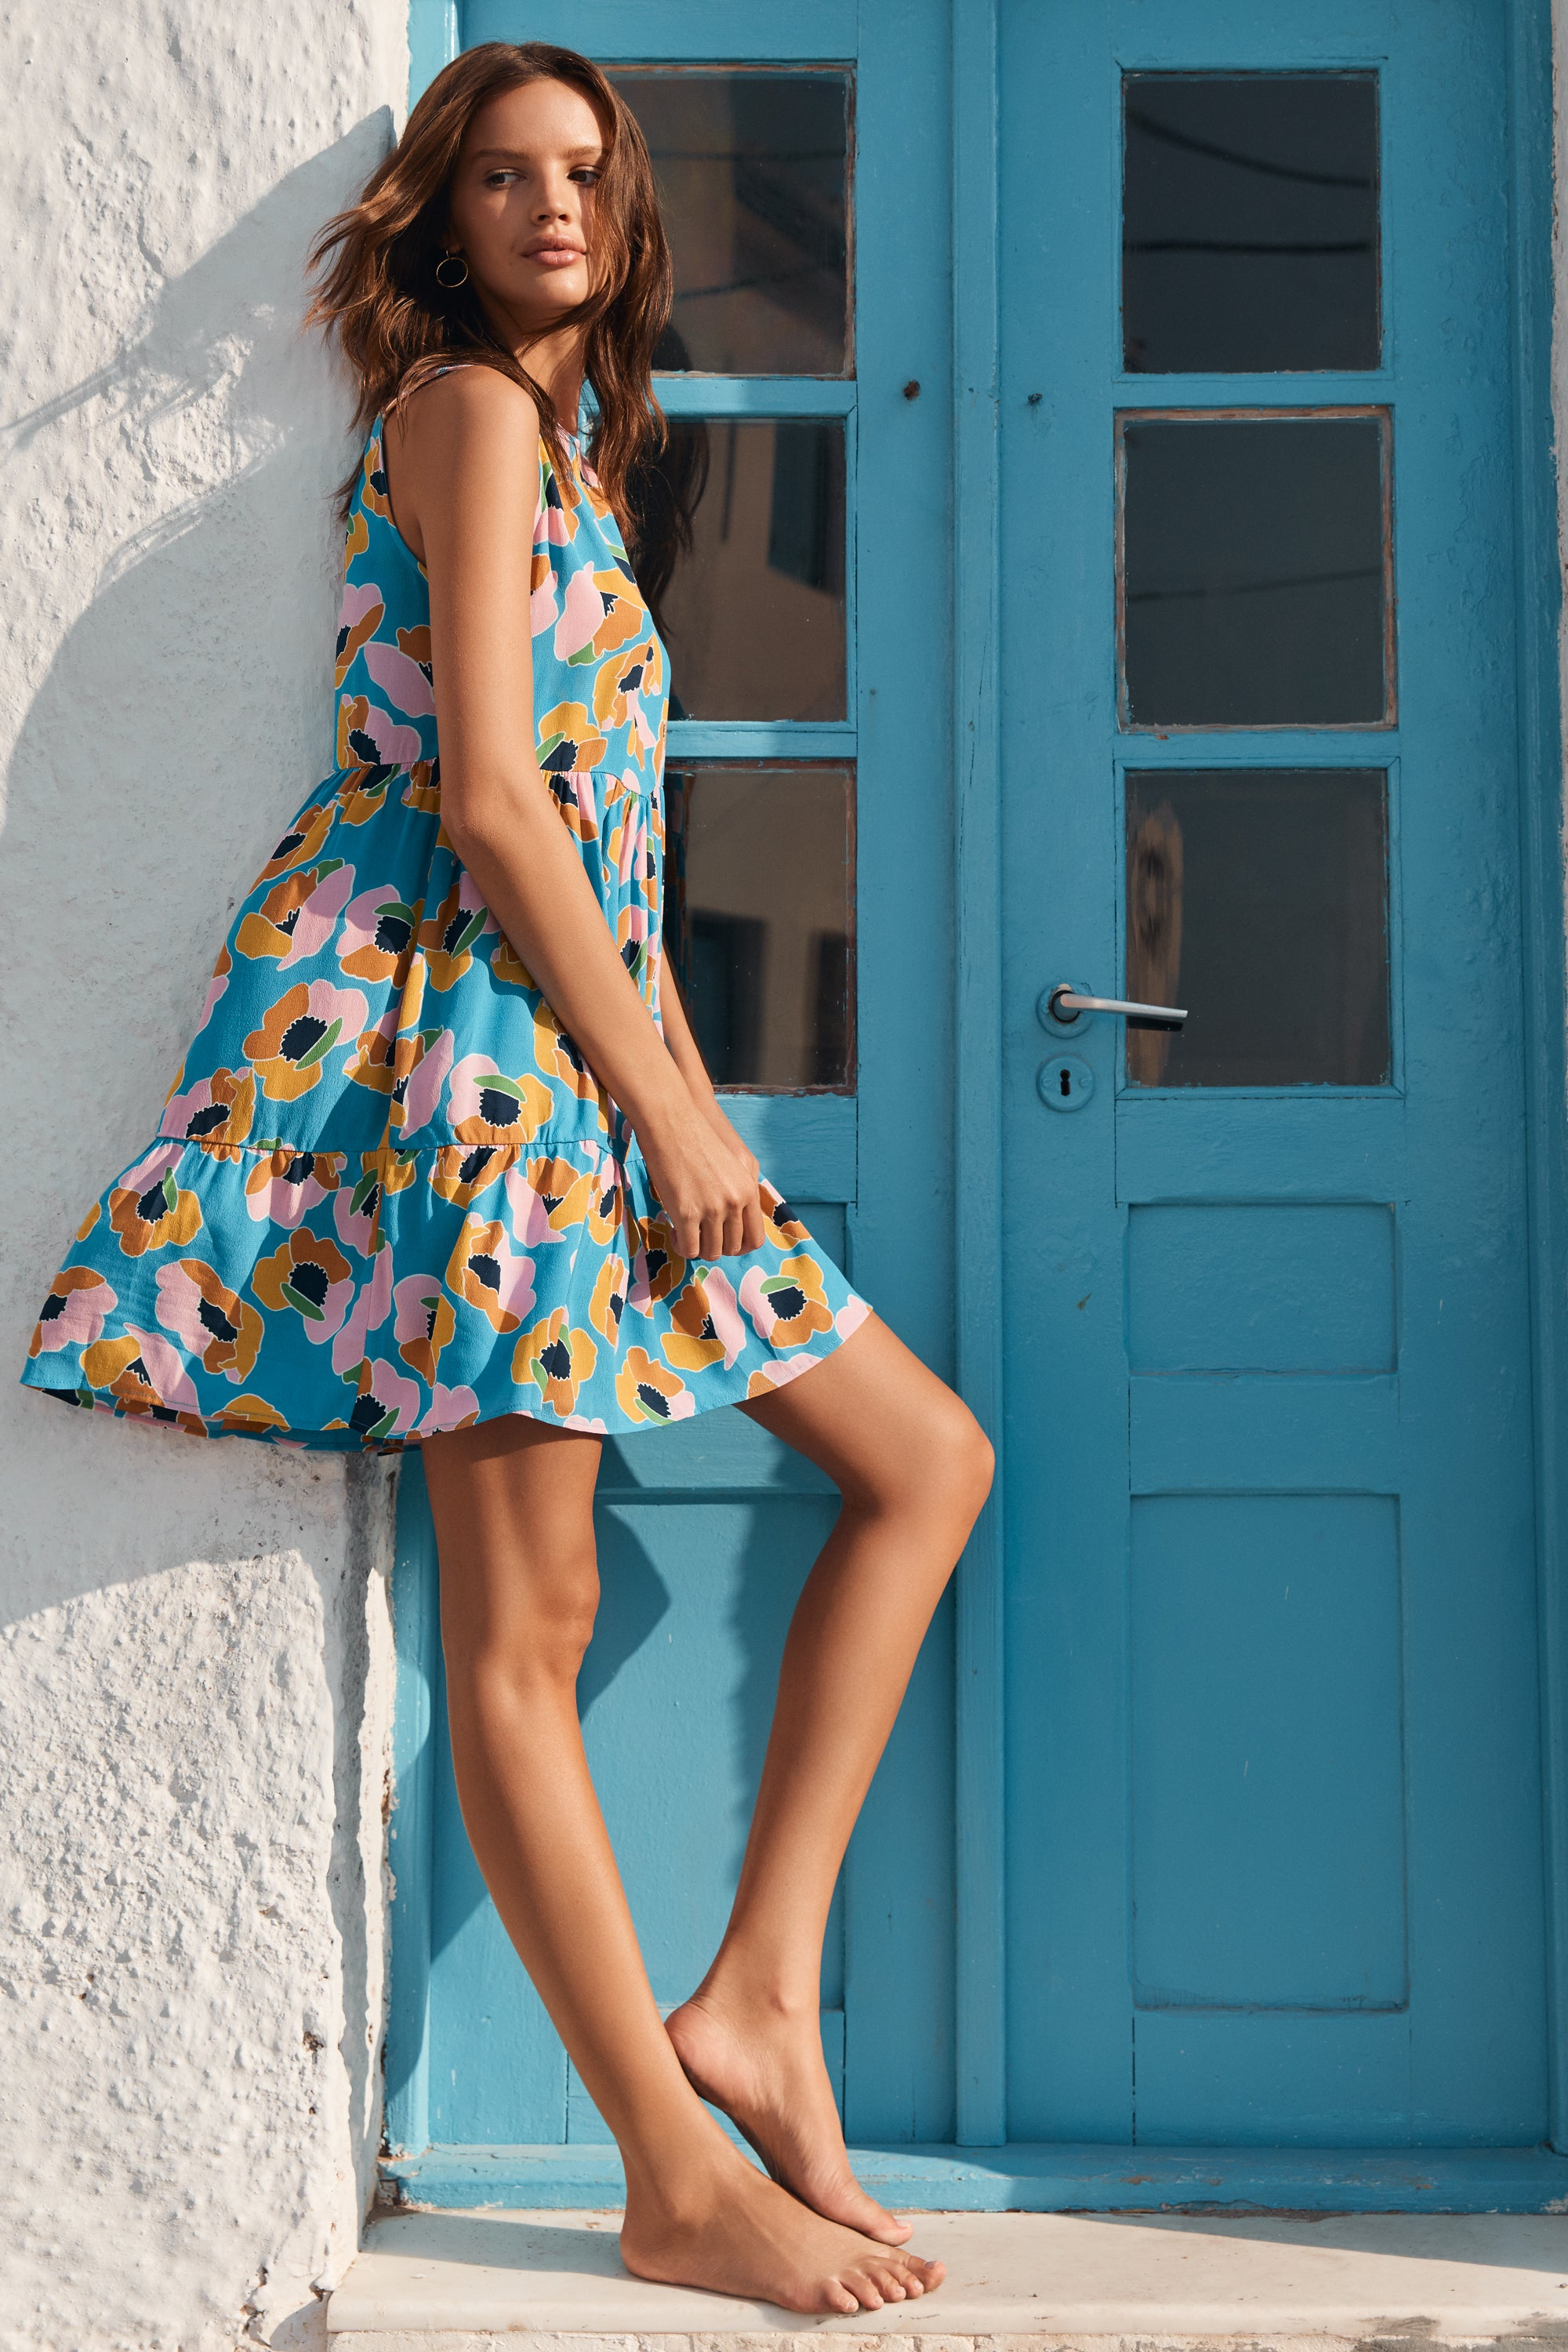 Olivia Dress In Pina Colada